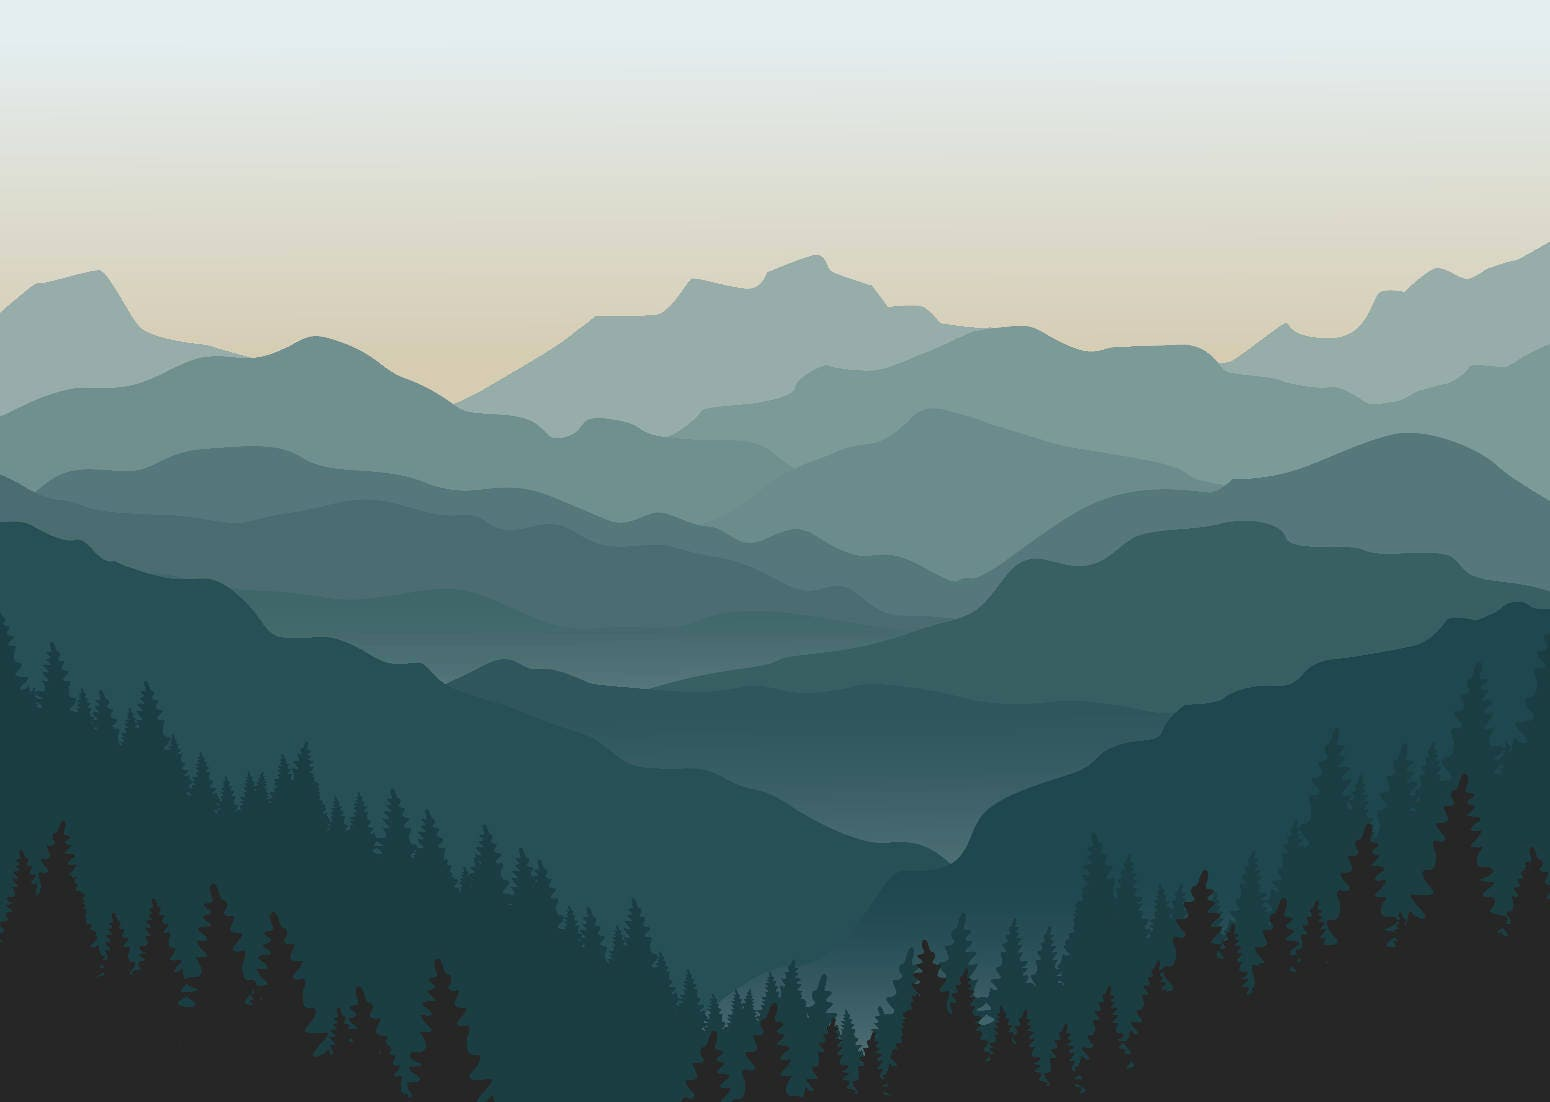 Misty mountain wallpaper foggy mountain silhouette wall mural Mountain silhouette